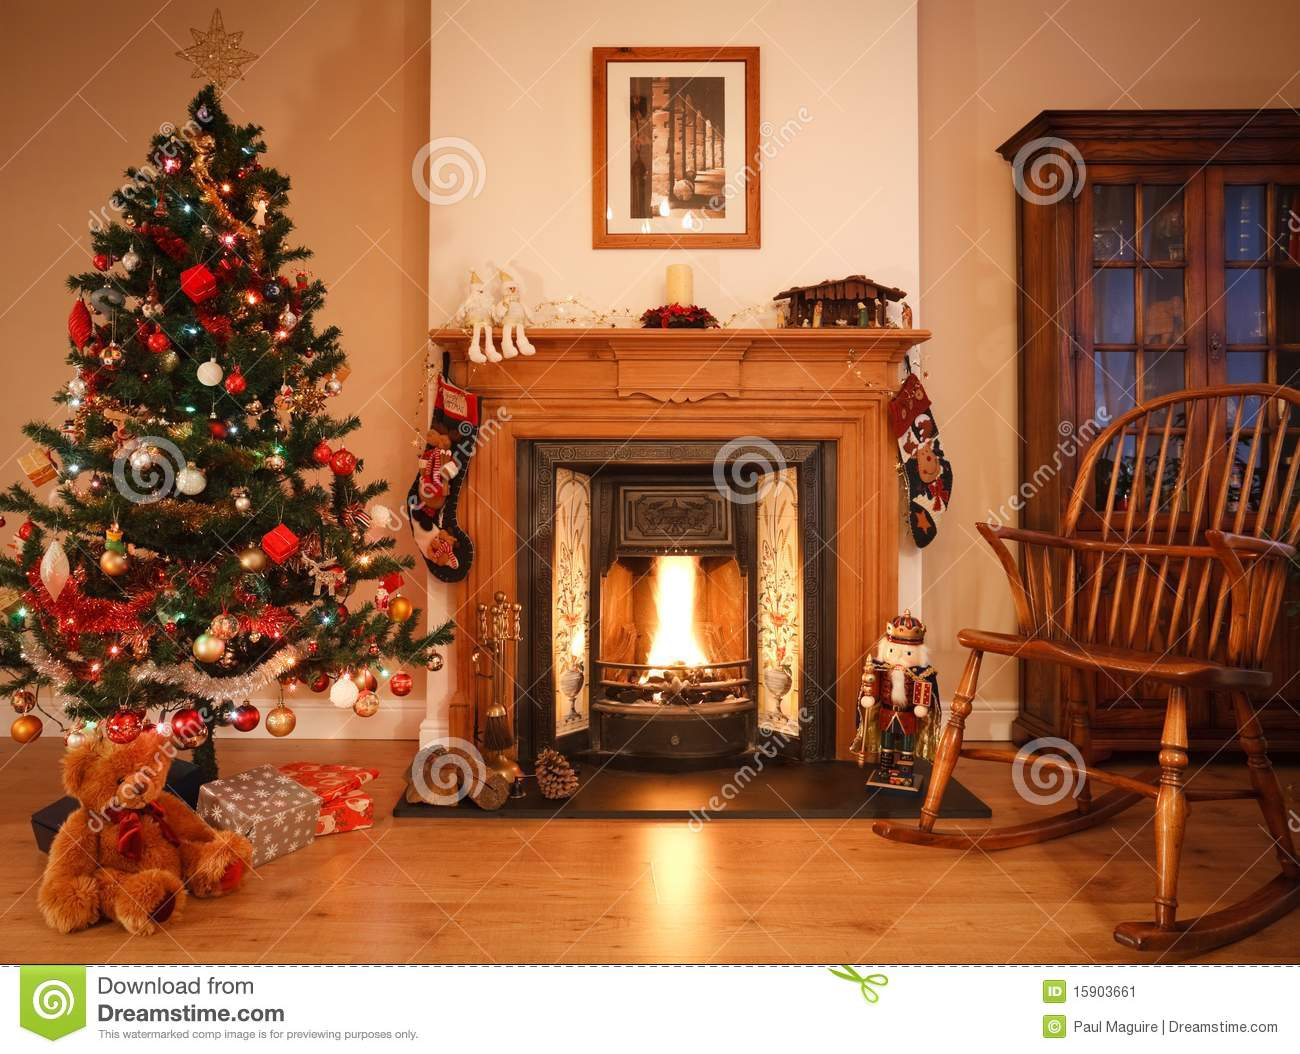 christmas living room. Christmas living room stock image  Image of chair fireplace 15903661